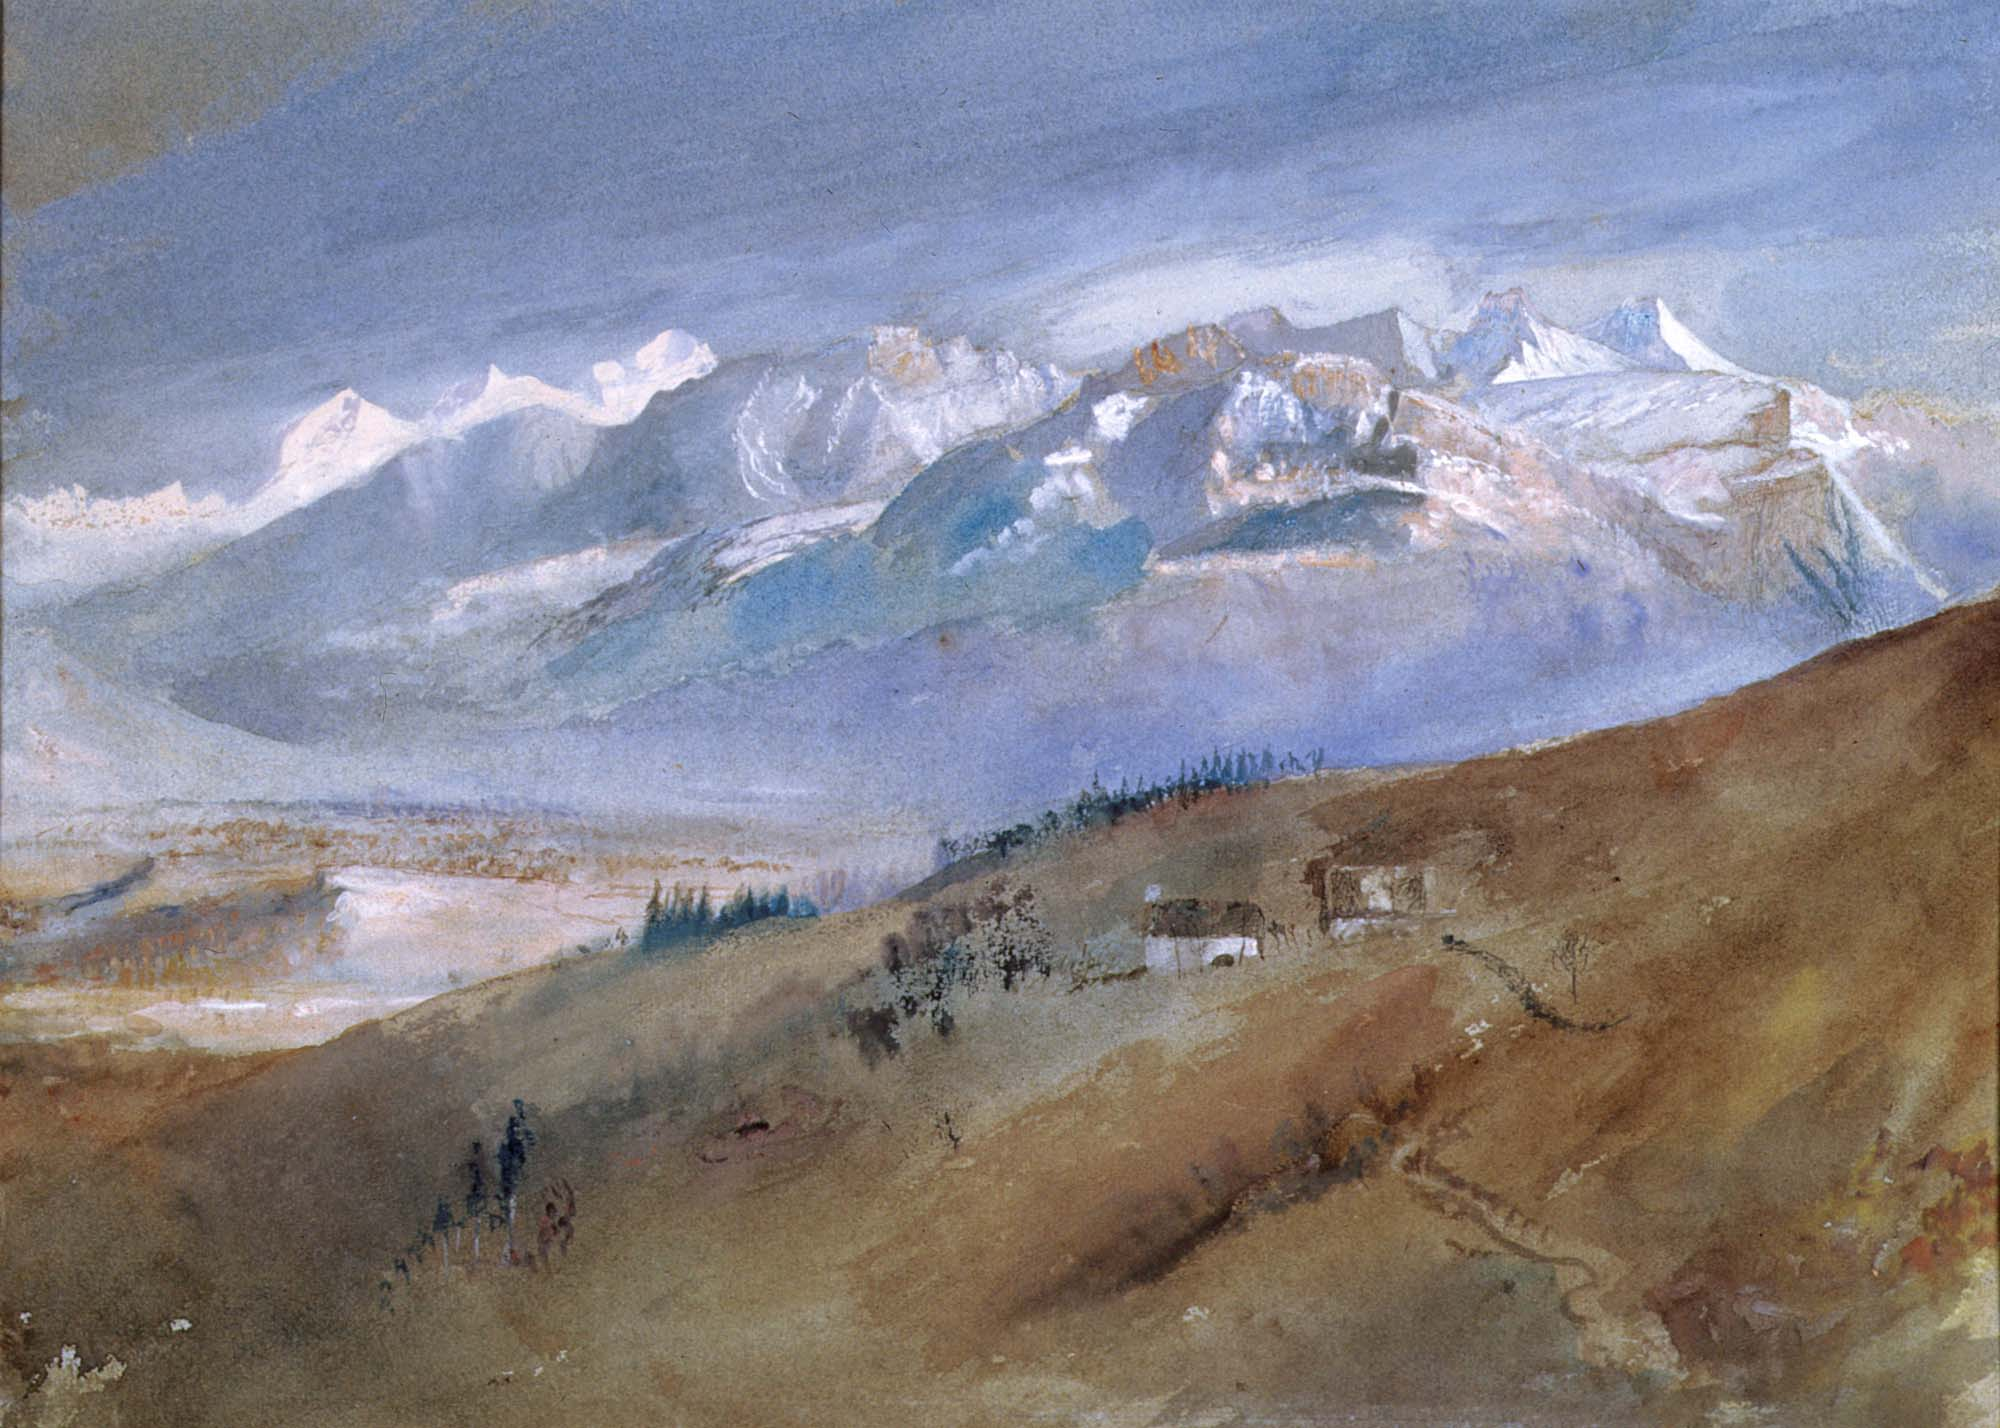 a watercolur scene of snow capped mountains and a hill in the foreground